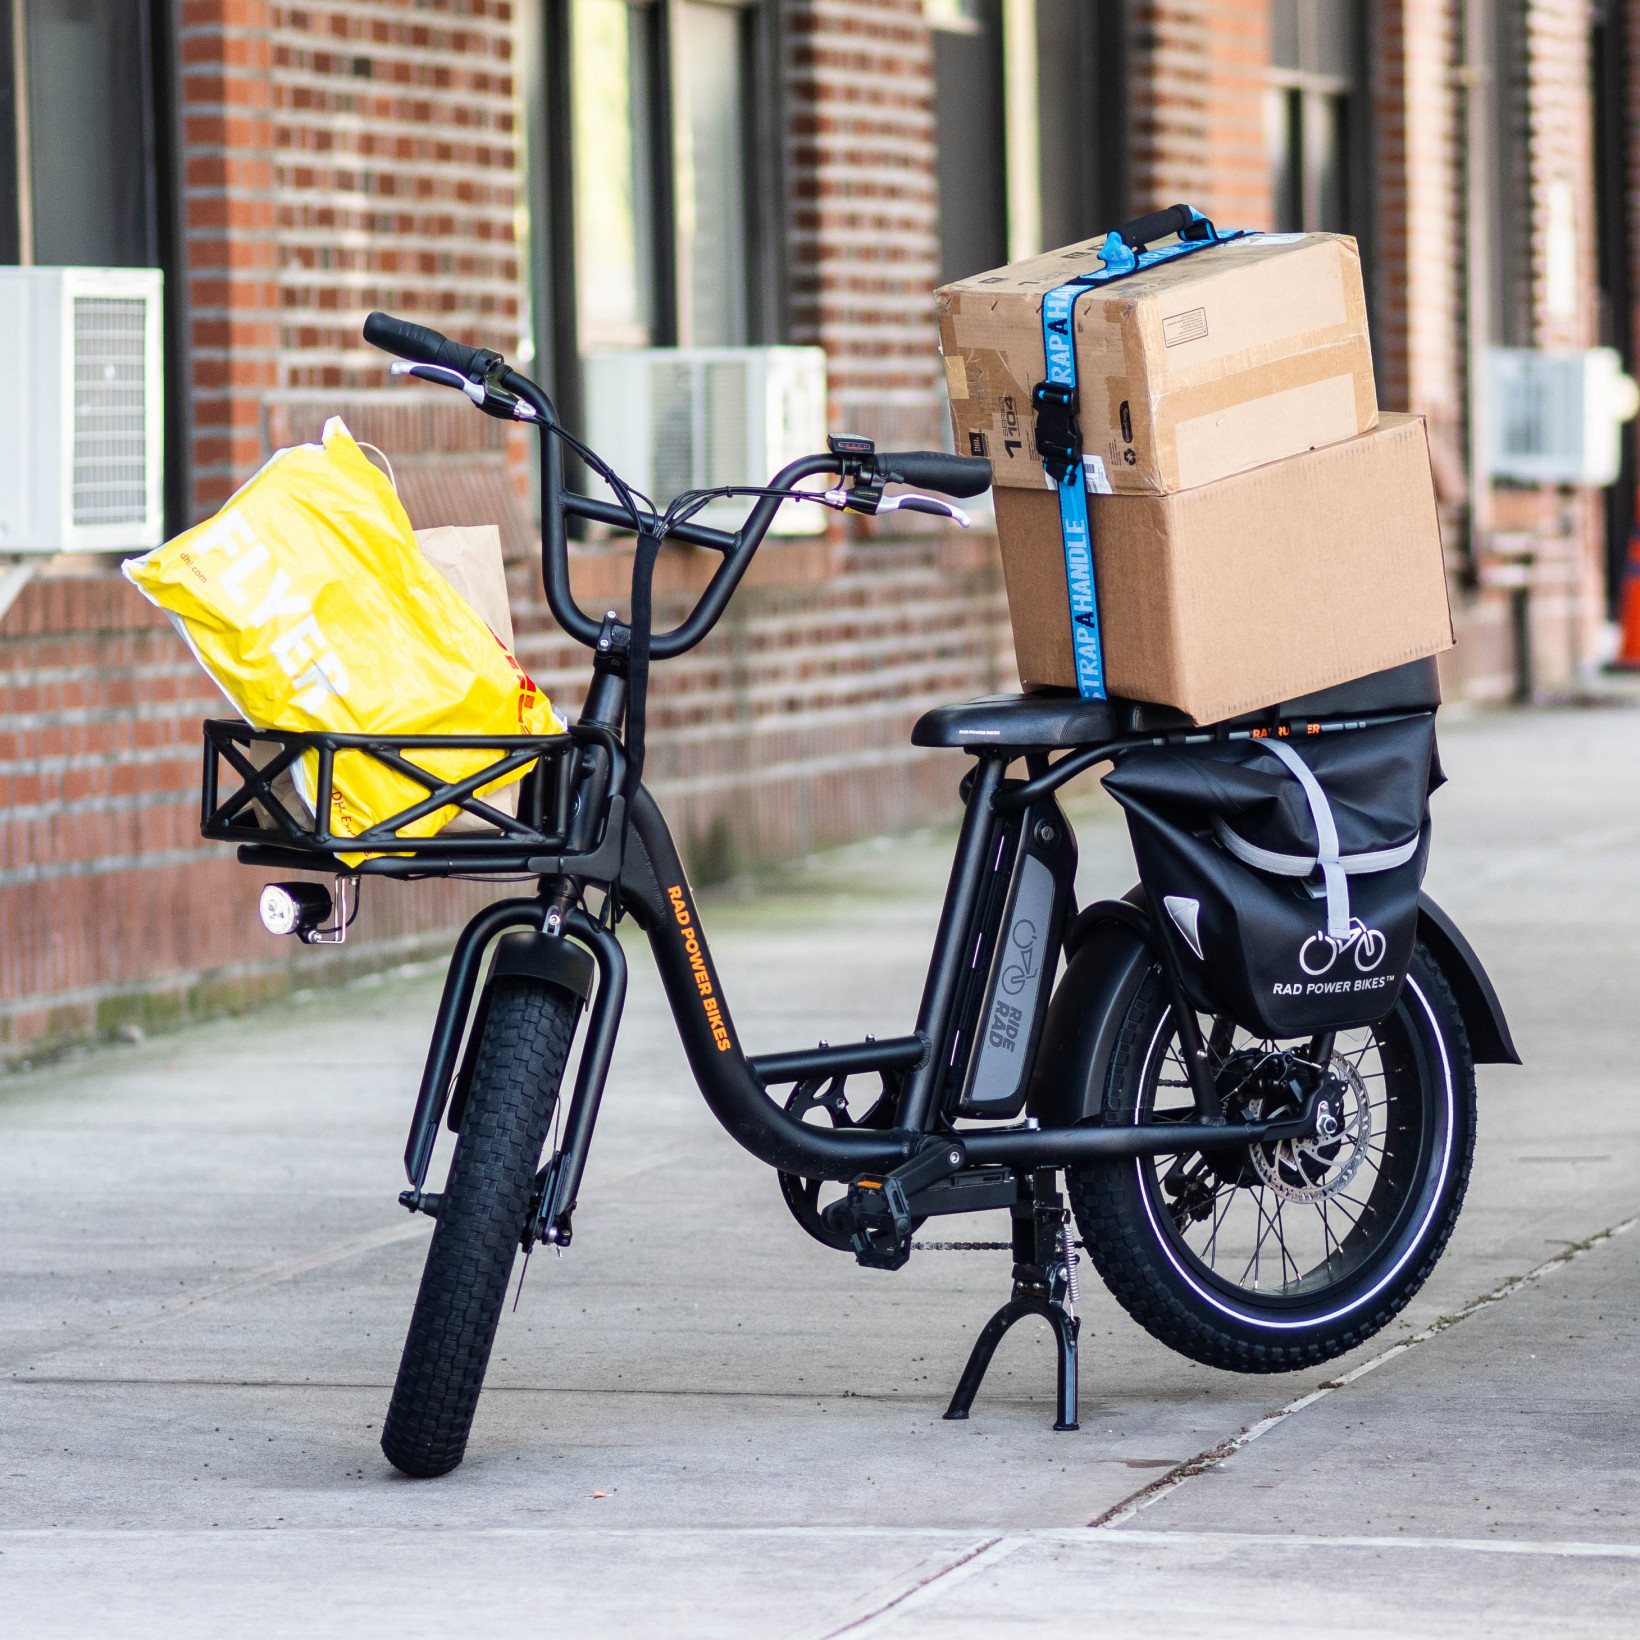 Review The Radrunner Is Part Cargo E Bike Part Moped